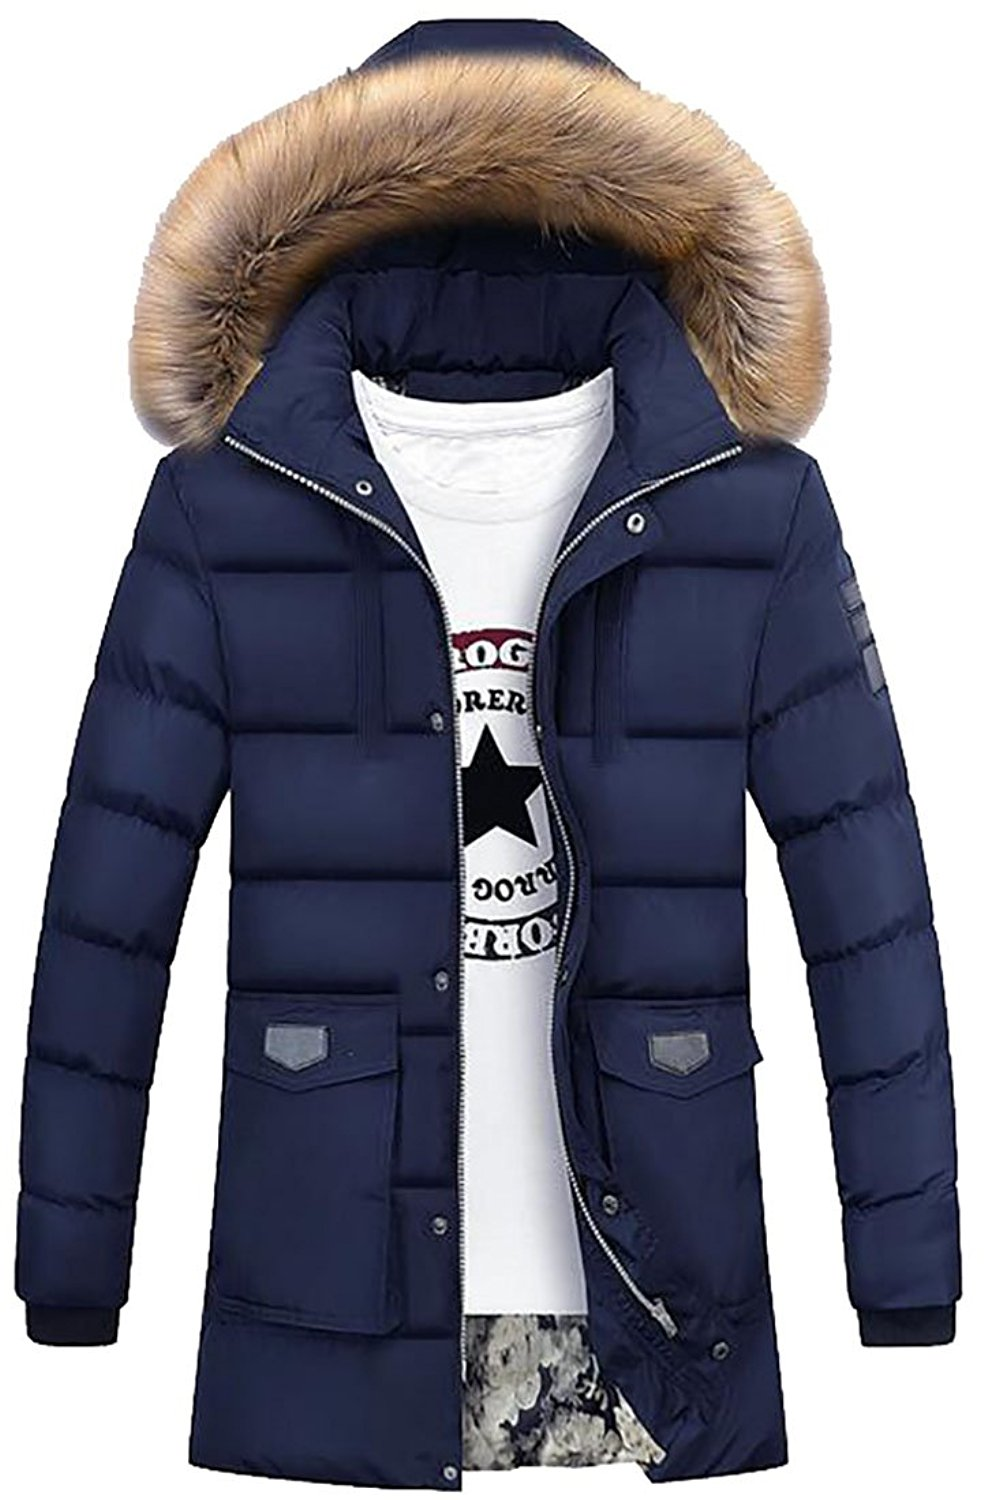 Pivaconis Mens Fur Collar Casual Hooded Padded Parka Jackets Winter Coats